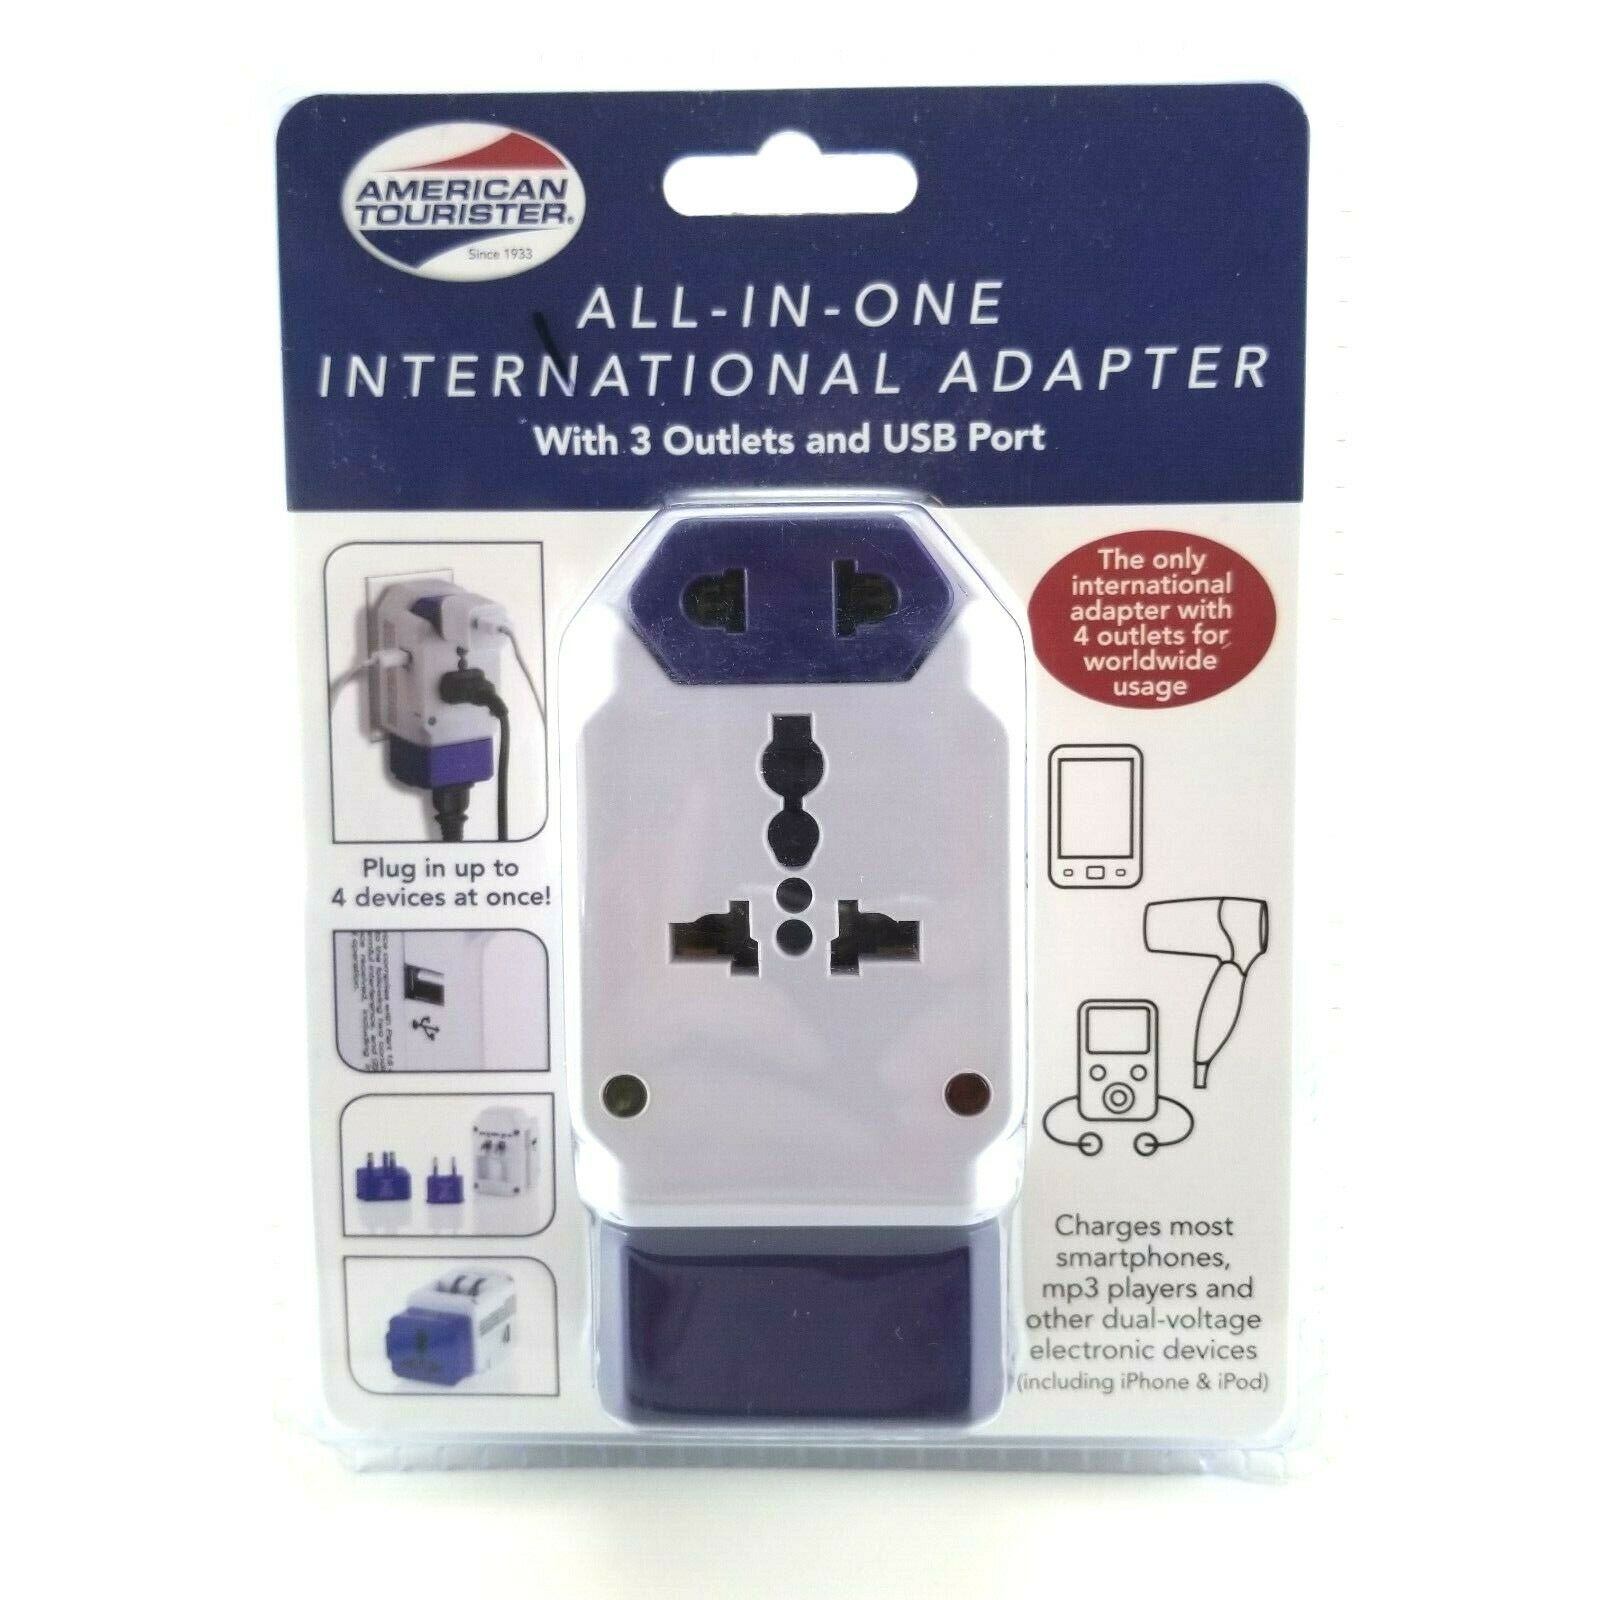 American Tourister All-in-one International Adapter plug with 3 outlets and USB